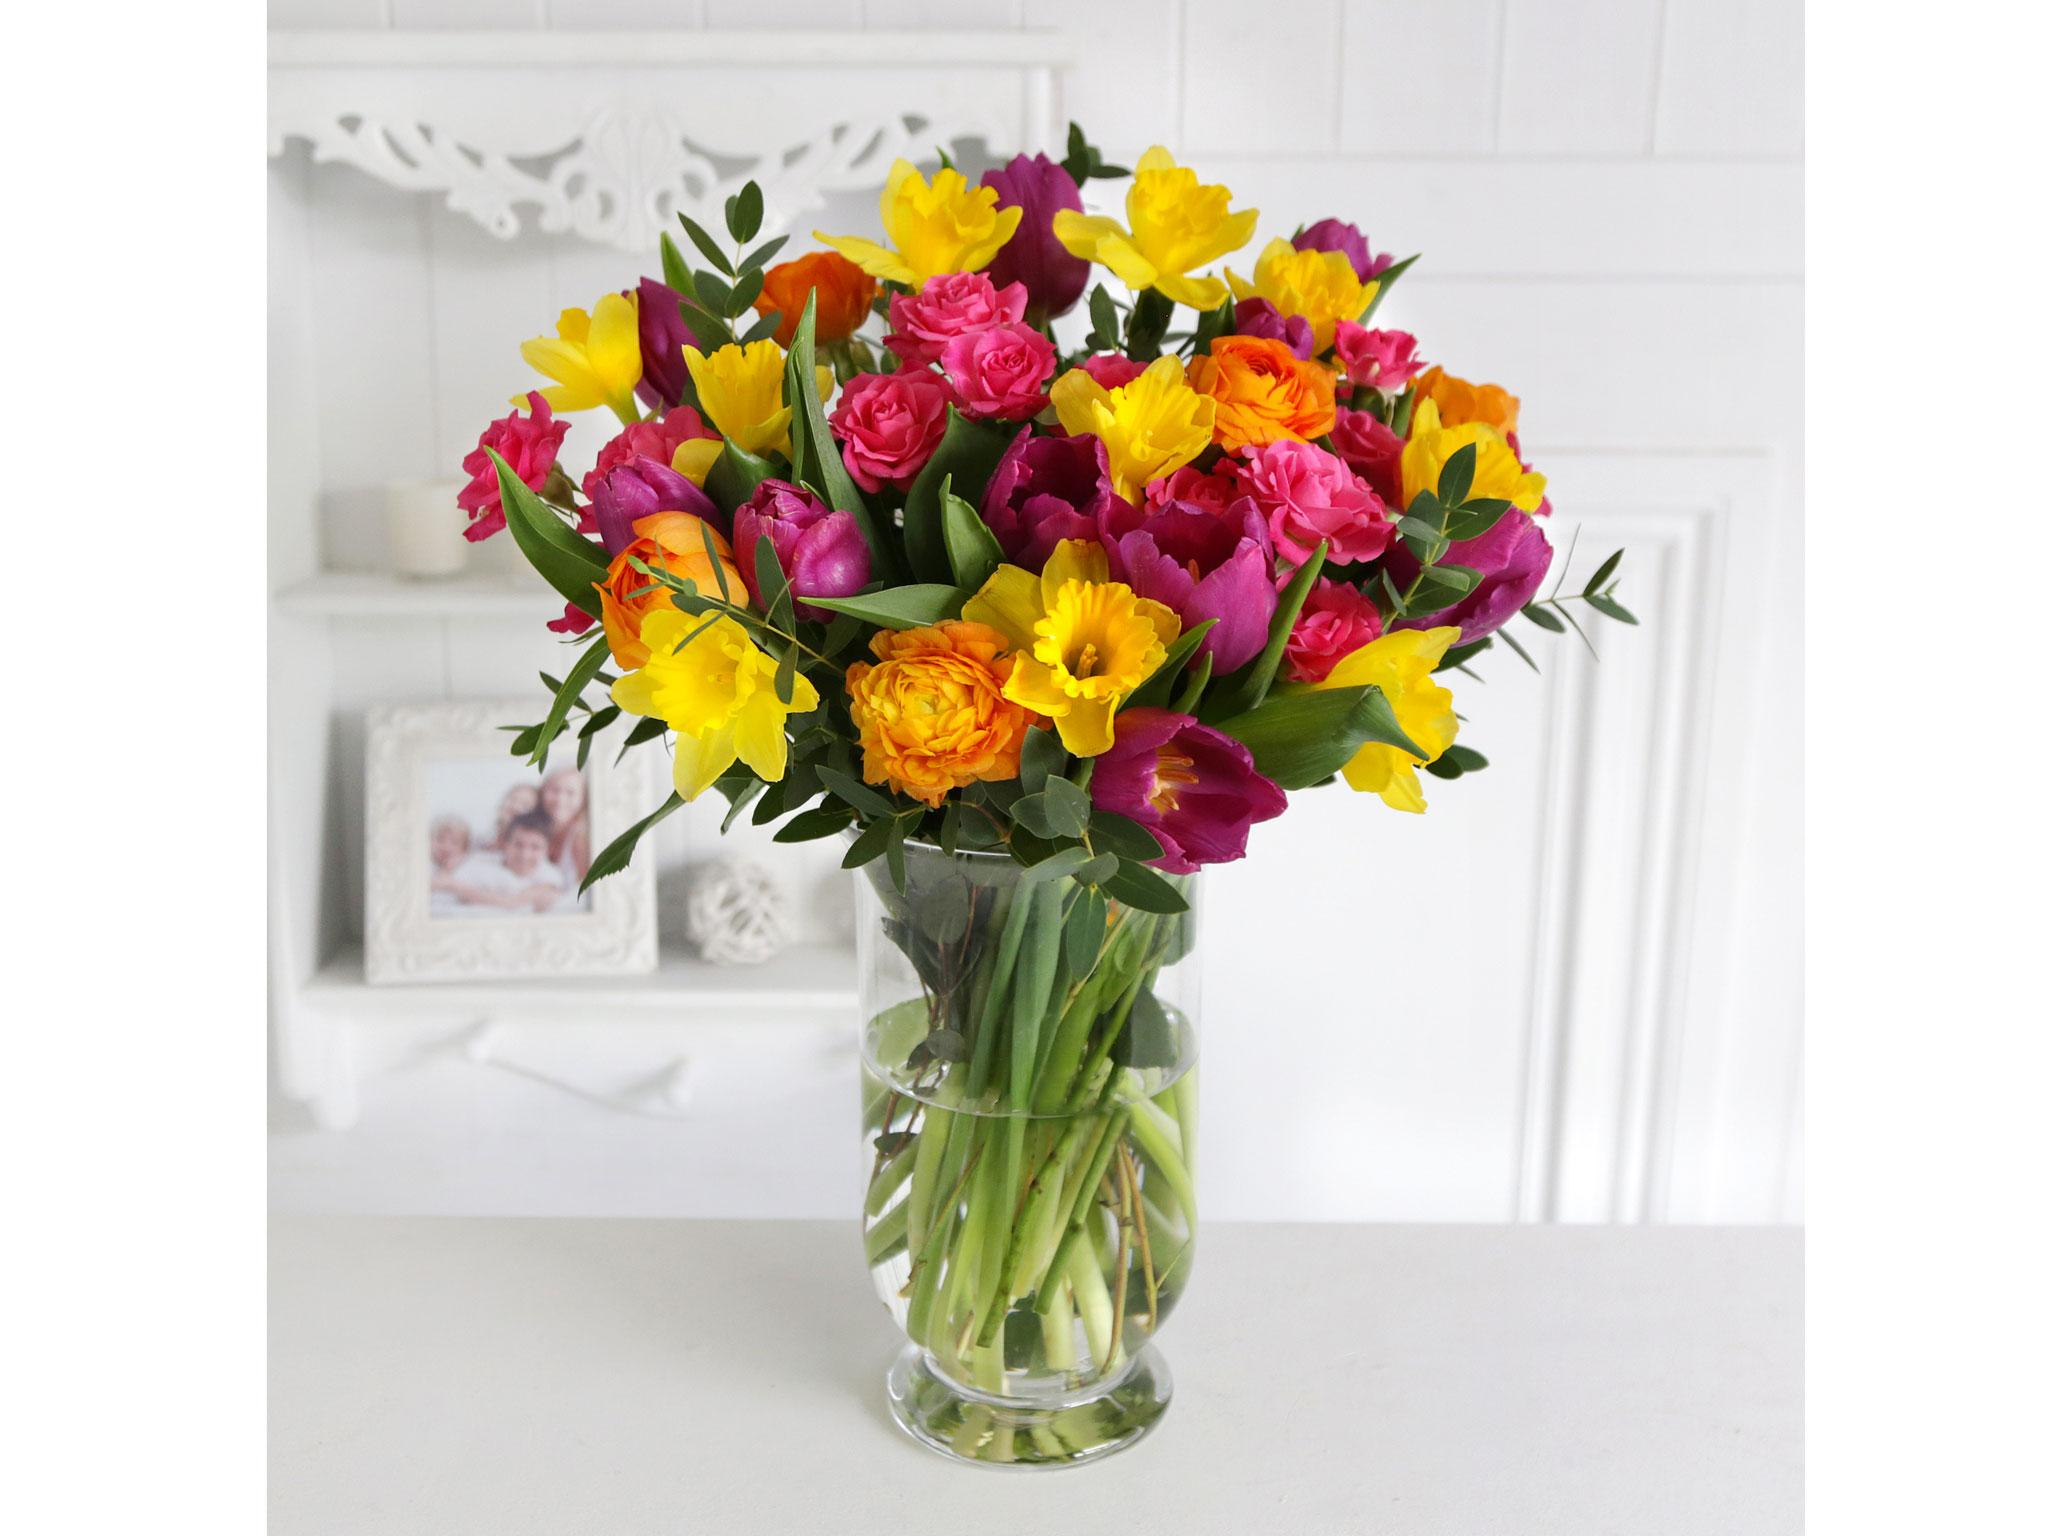 Best wild flowers waitrose christmas flowers wild flowers waitrose christmas flowers these flowers are very beautiful here we provide a collections of various pictures of beautiful flowers charming izmirmasajfo